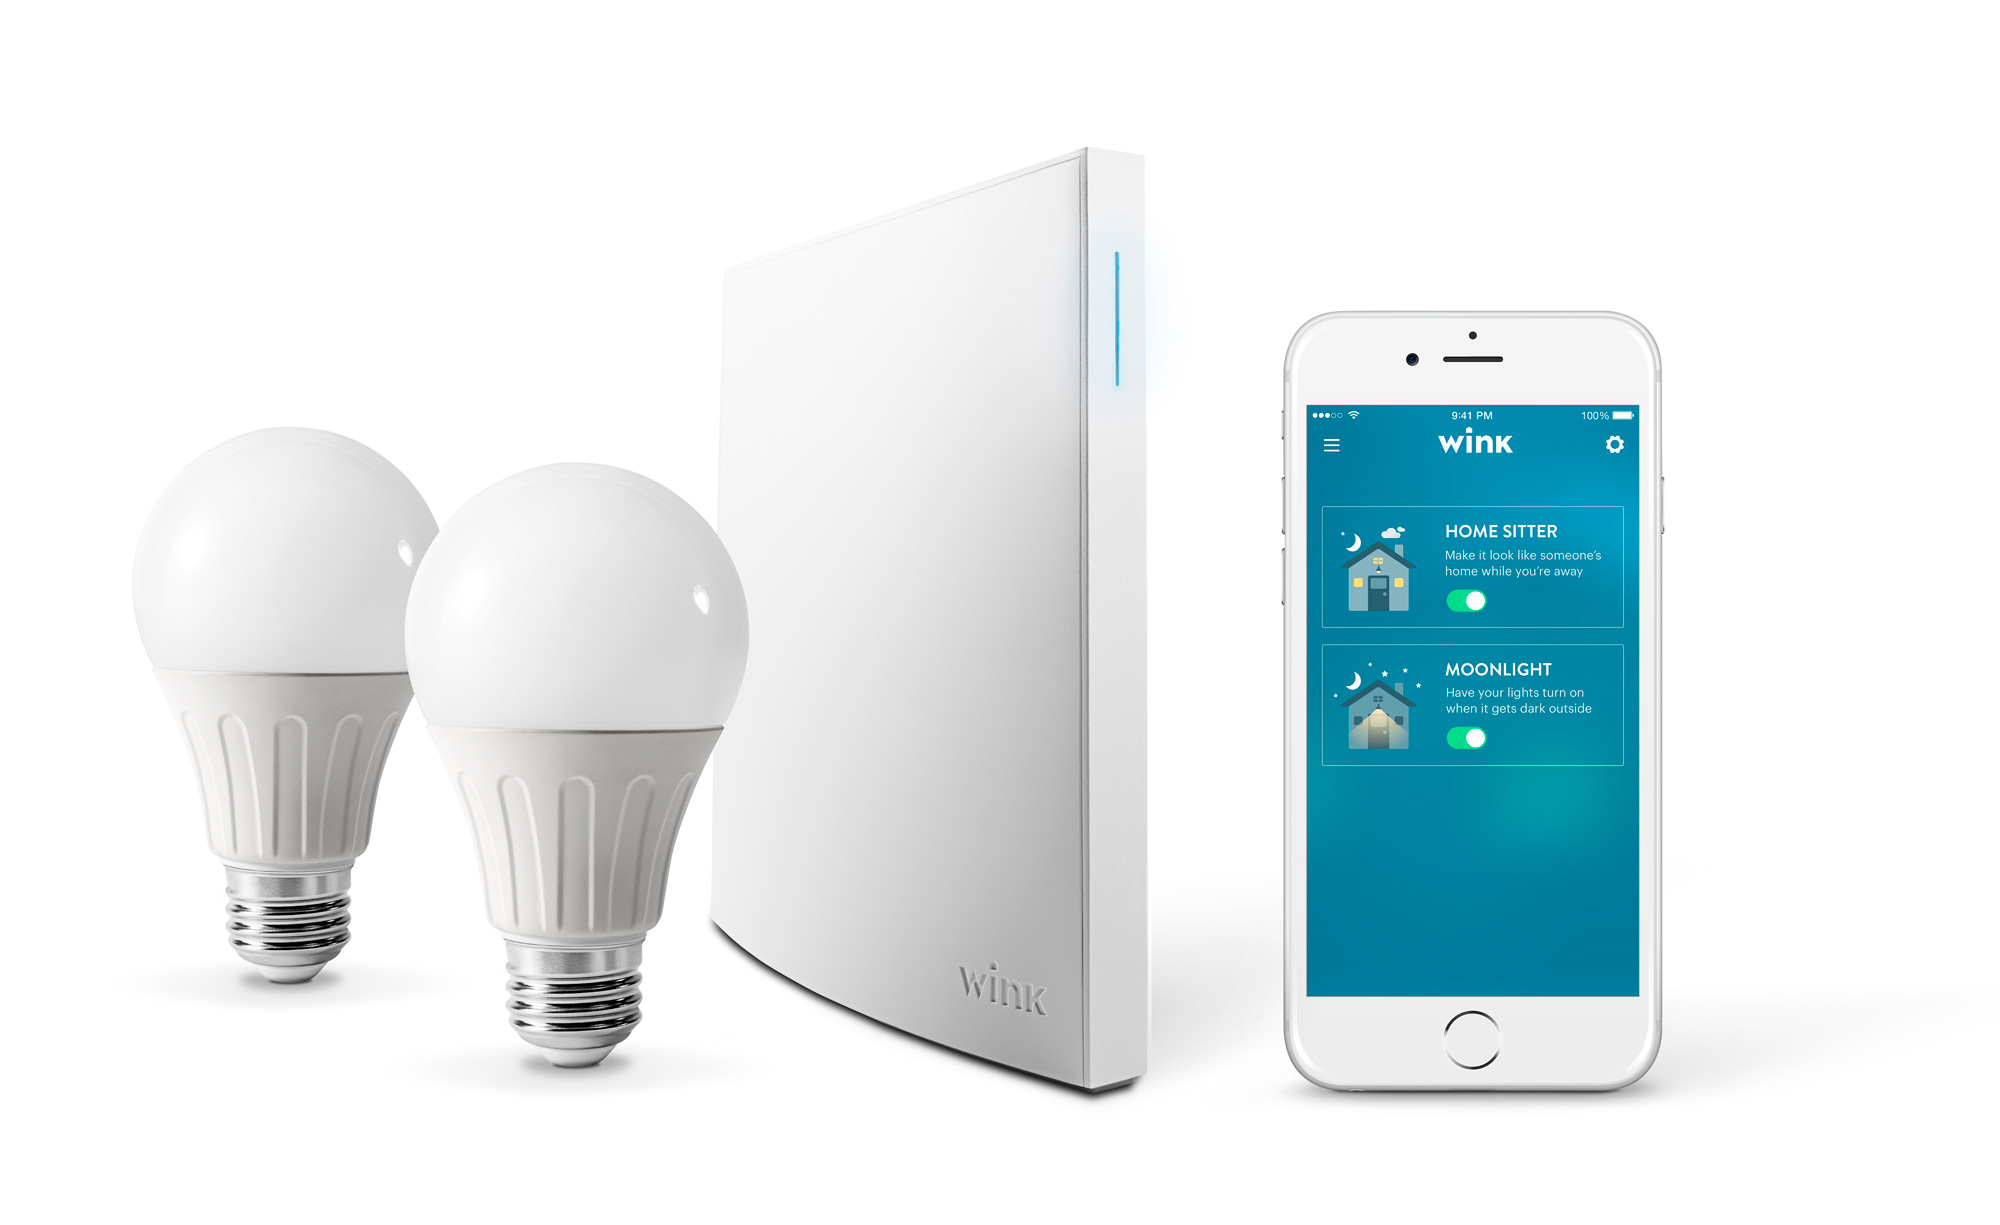 Wink Buy And View Smart Home Products About 3way Digital Wireless Remote Control Light Lamp On Off Switch 3 Results